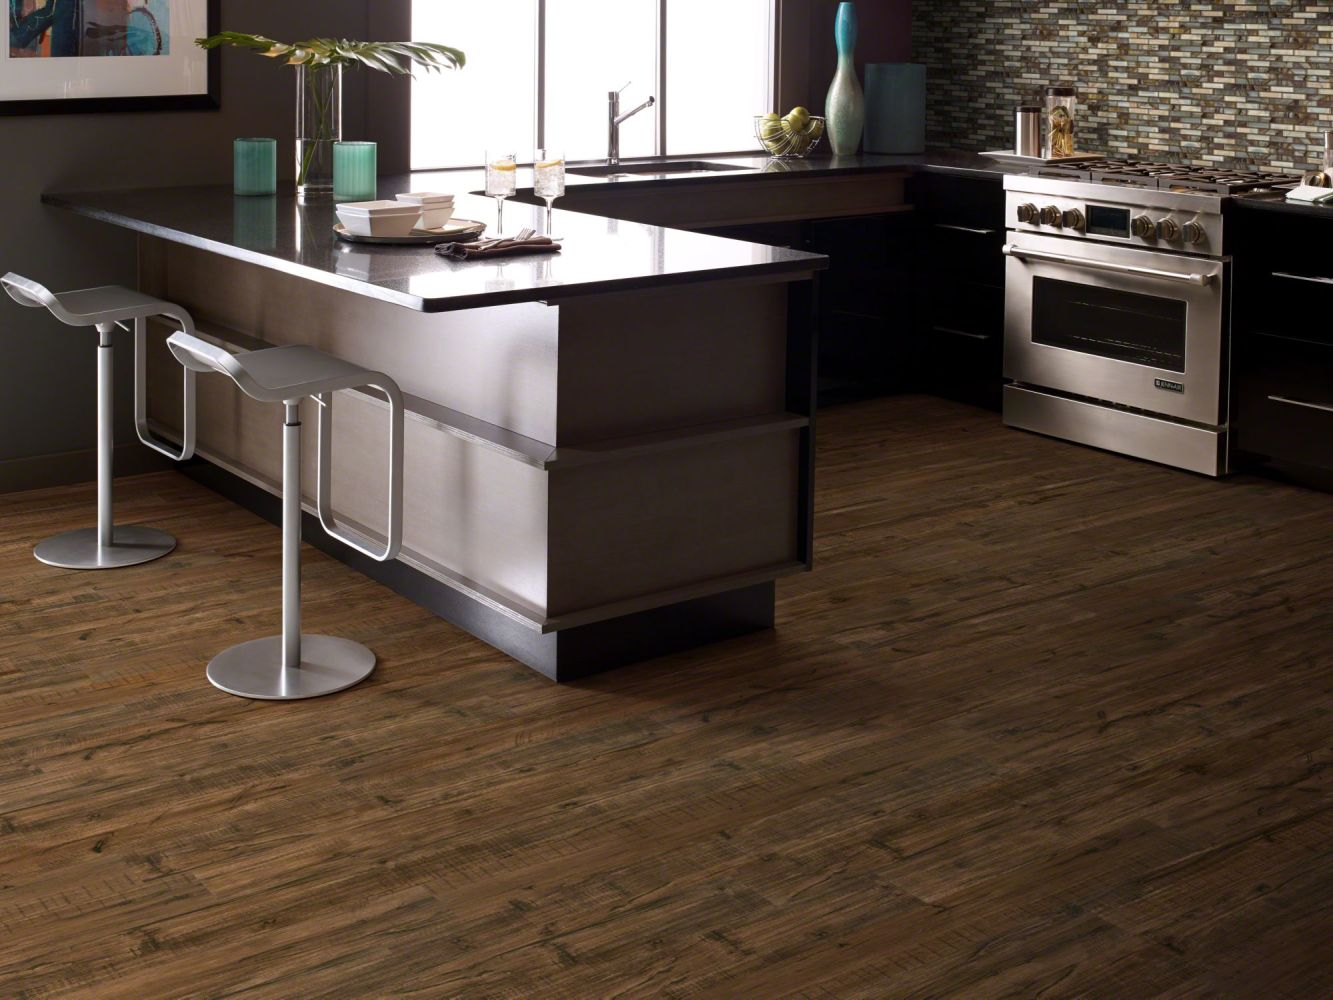 Shaw Floors Resilient Residential Valore Plus Plank Parma 00734_2545V